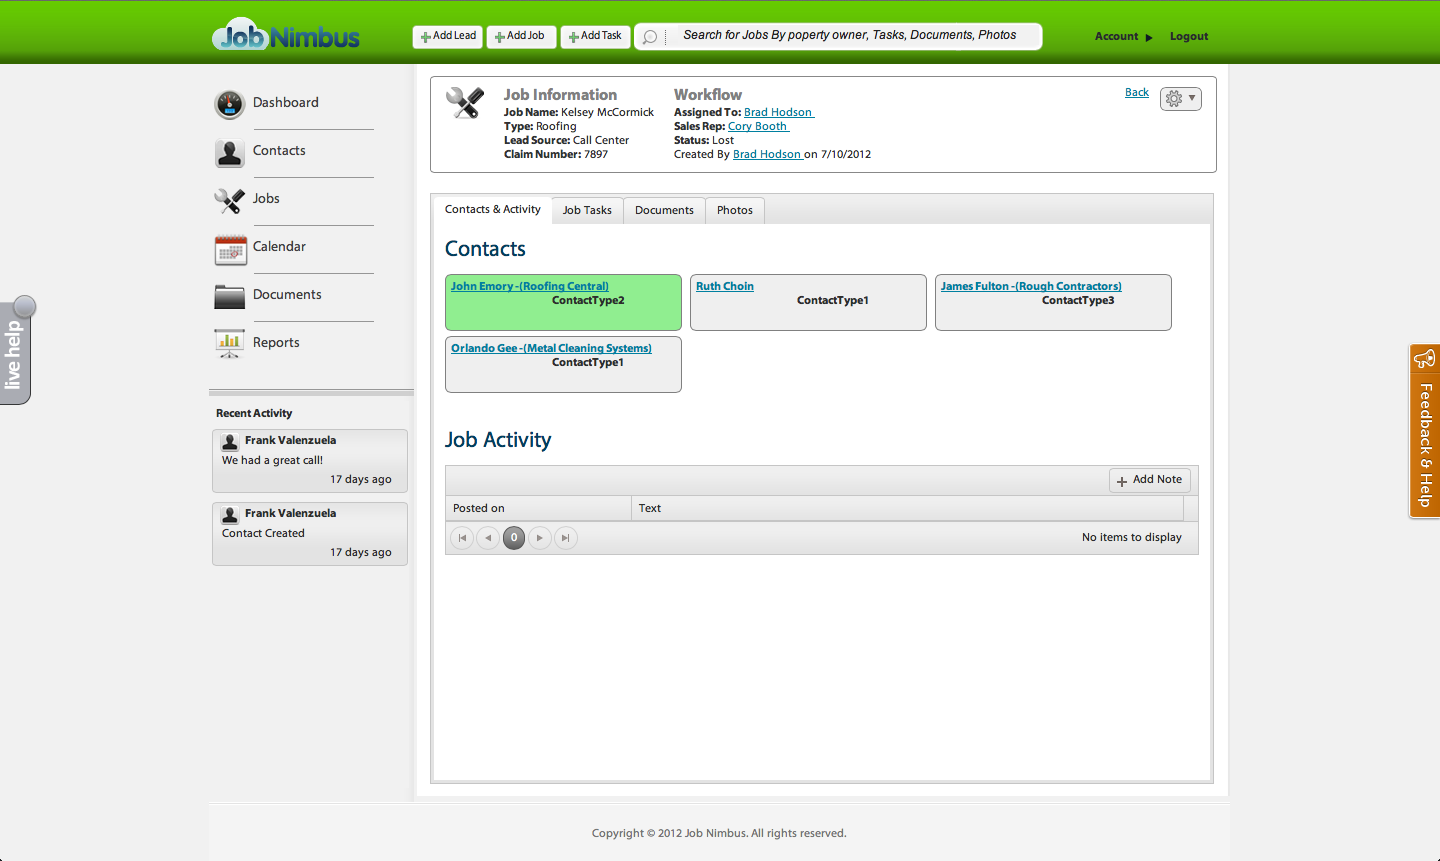 JobNimbus screenshot: Contact management in  JobNimbus